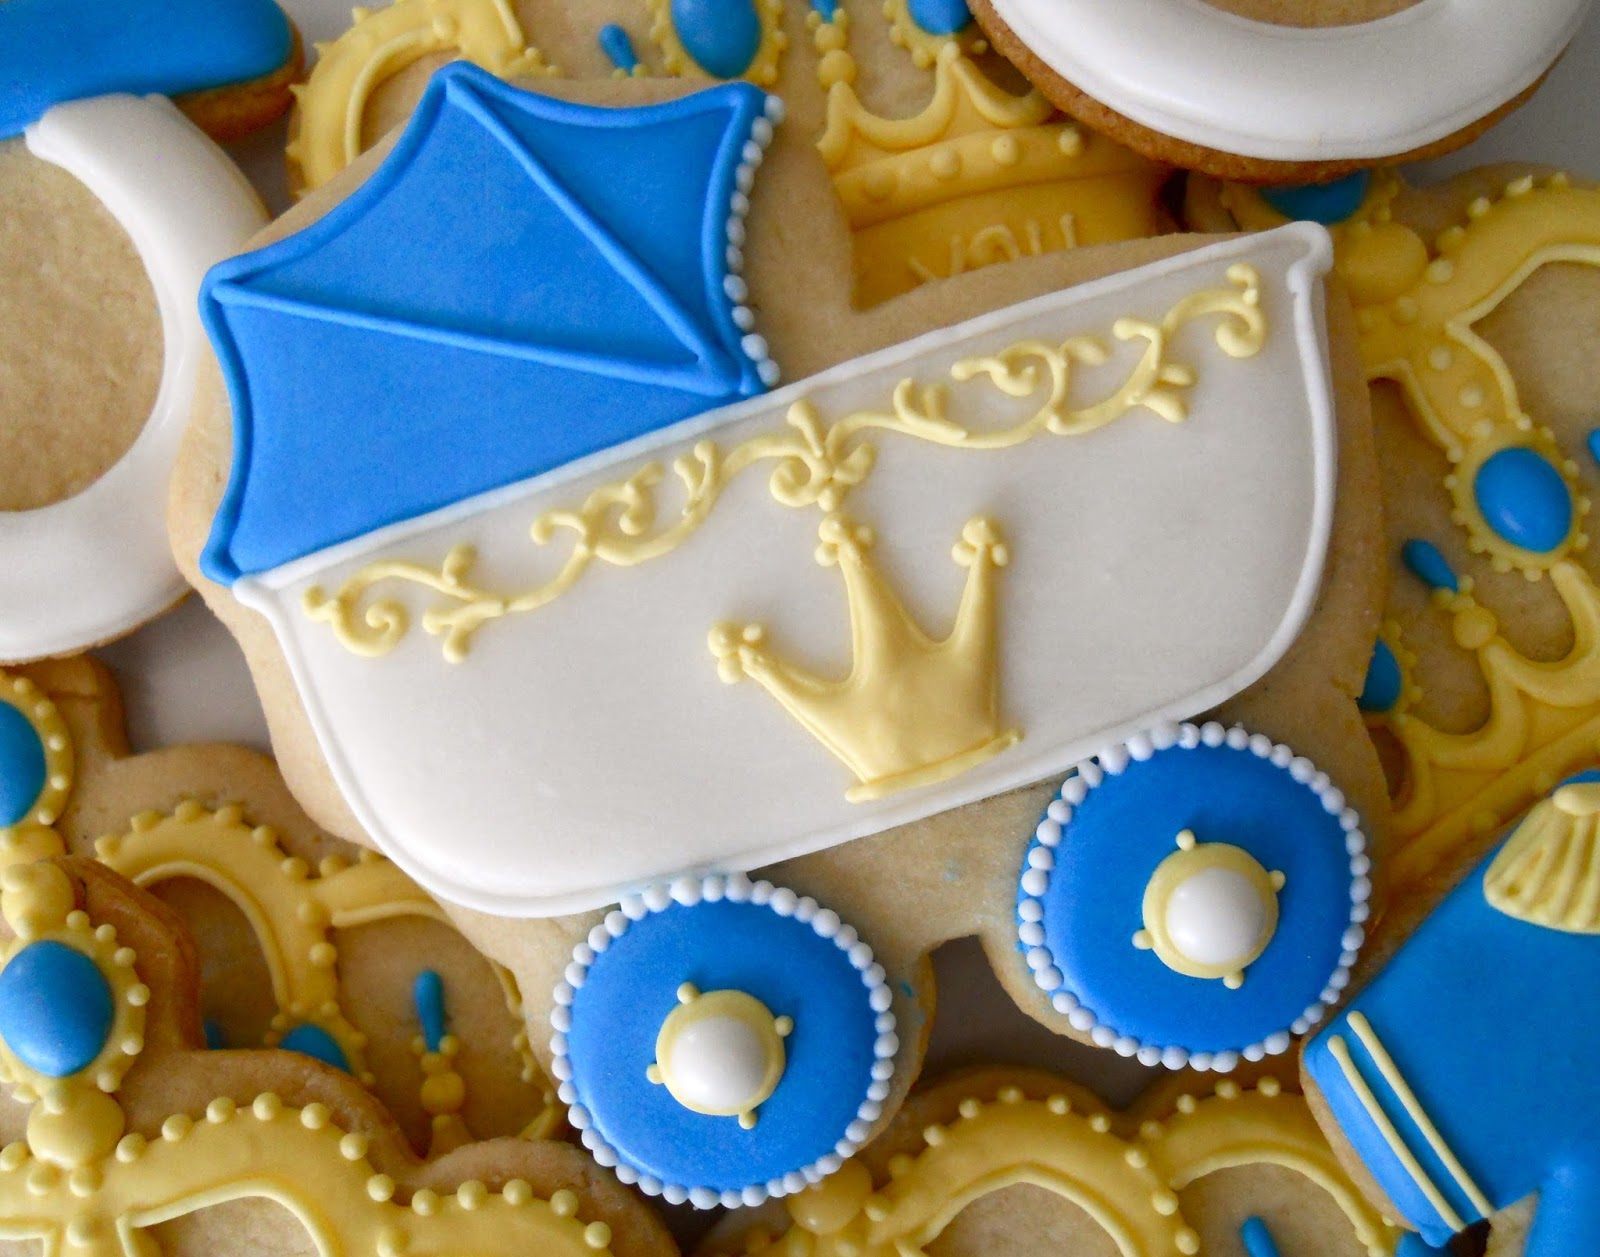 Prince baby shower cake ideas and designs for A new little prince baby shower decoration kit